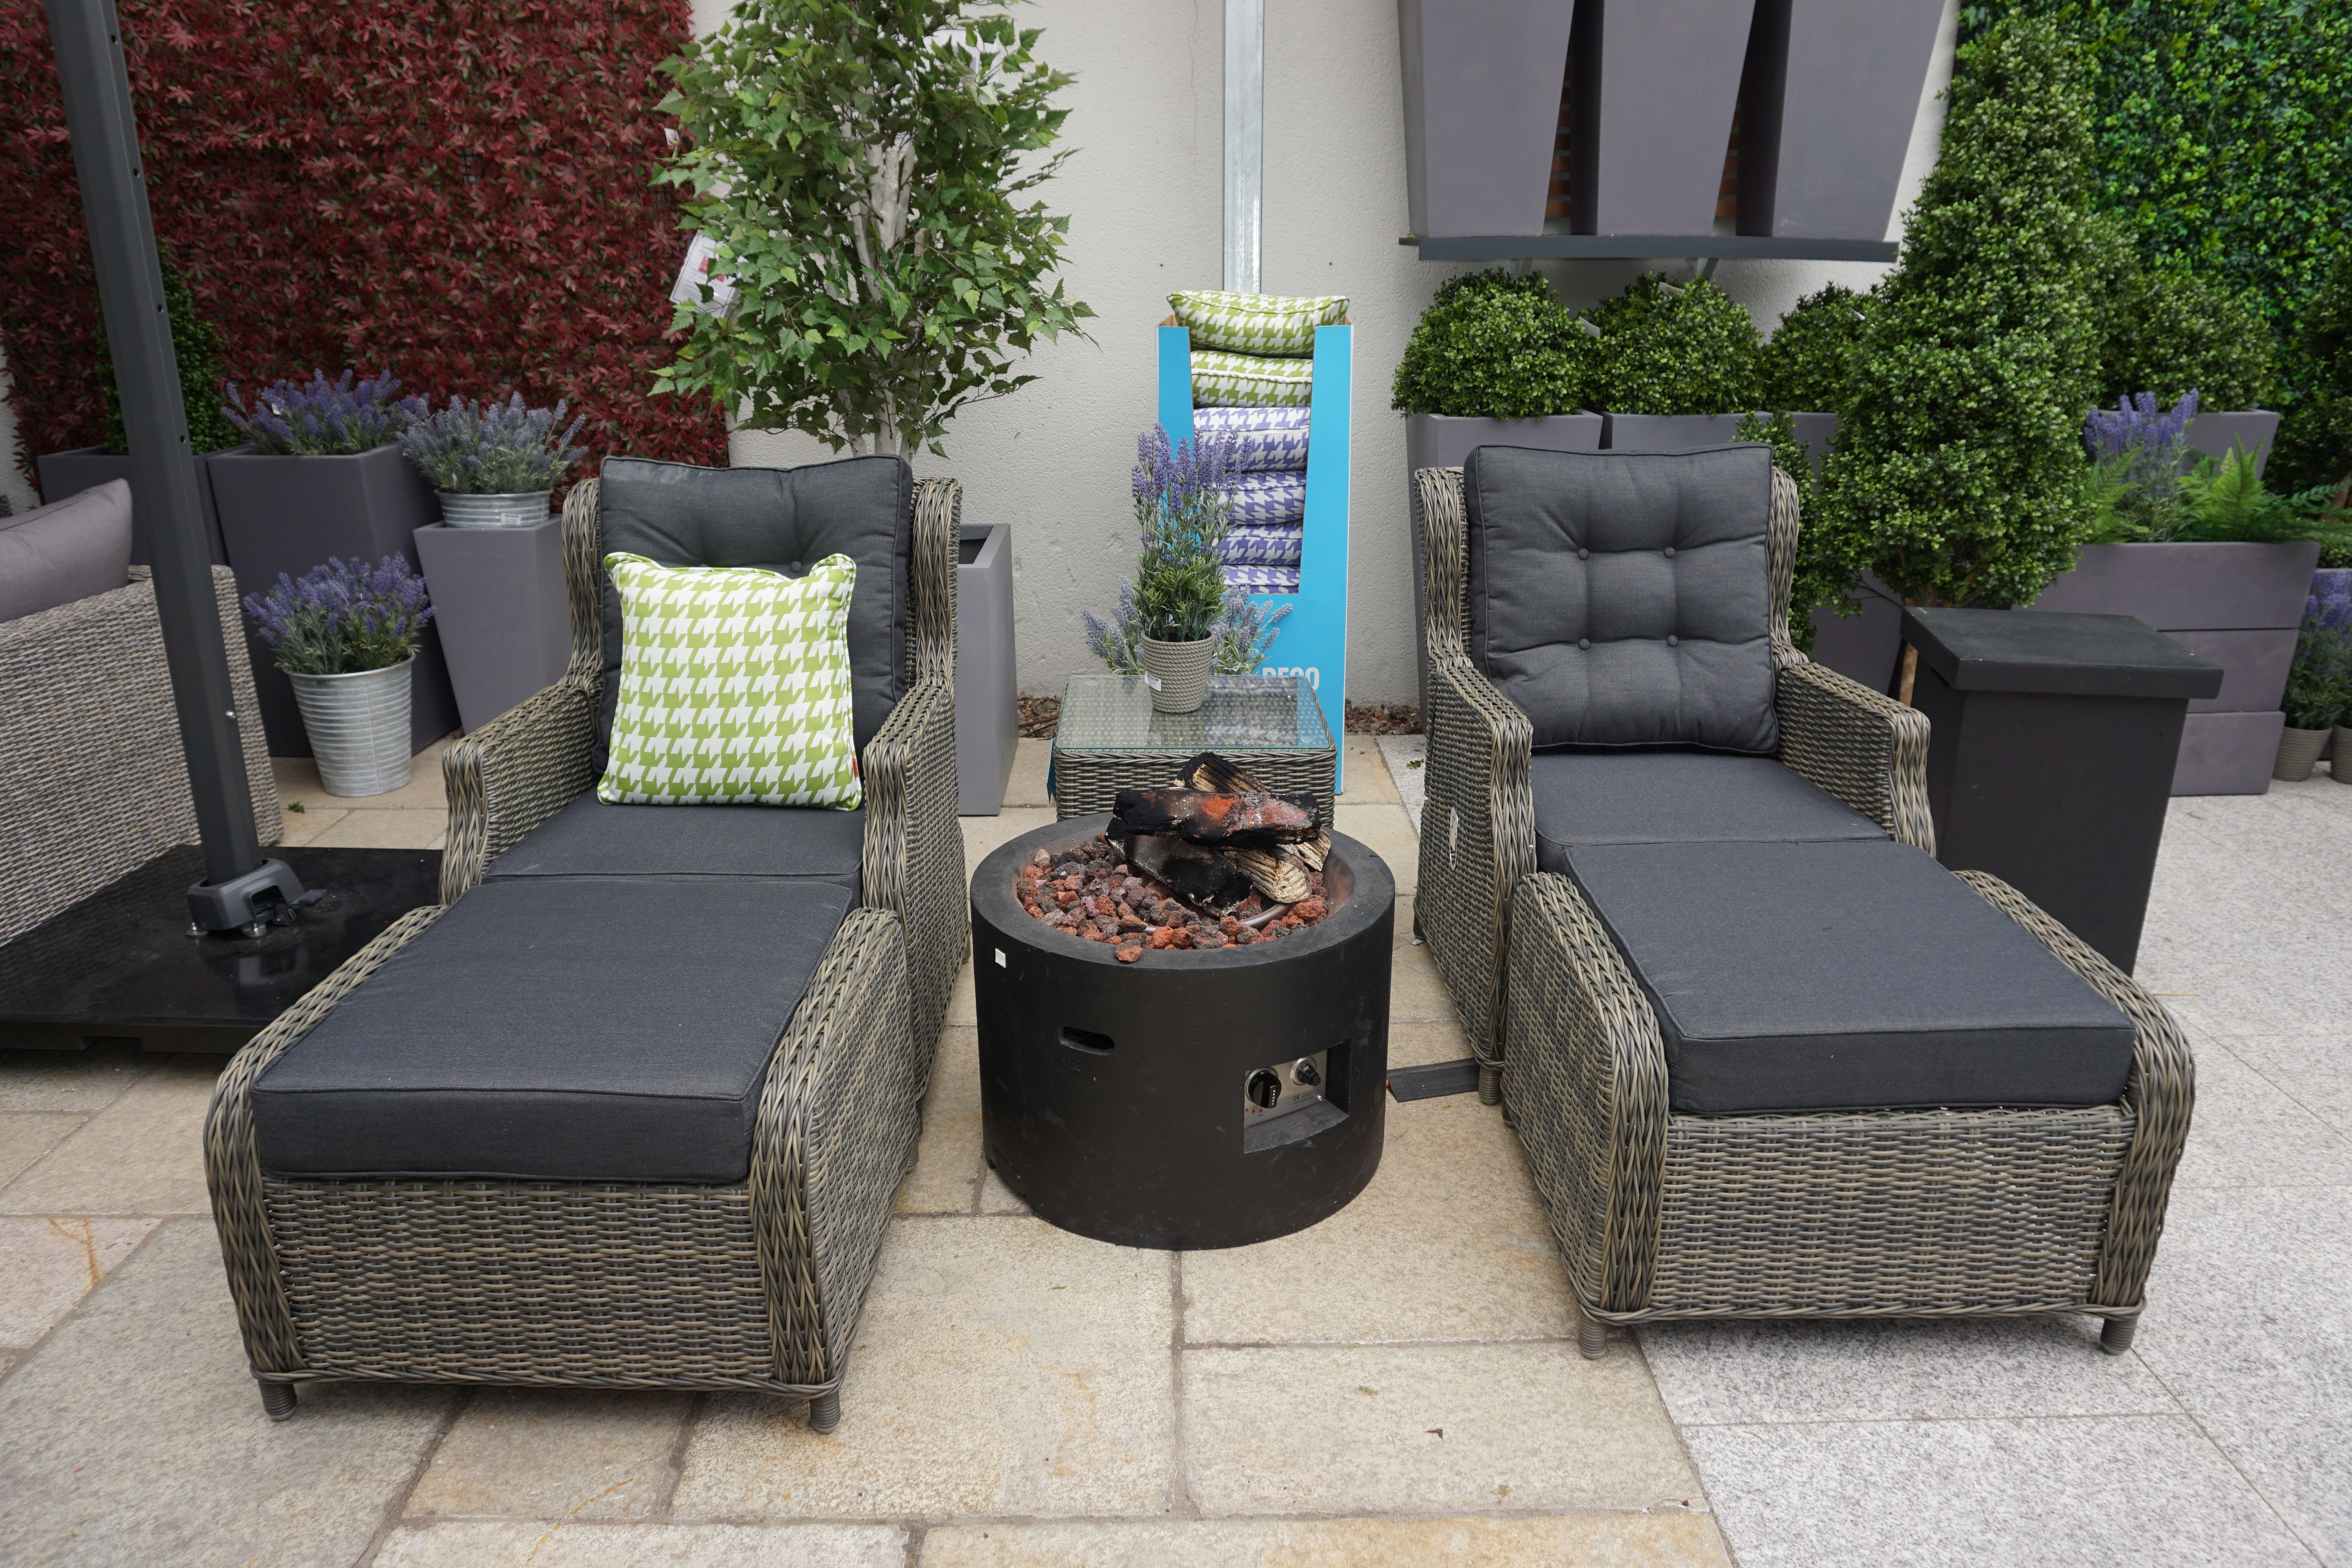 Lounge in Style with the Toscanne Lounger Set in 9  Garden